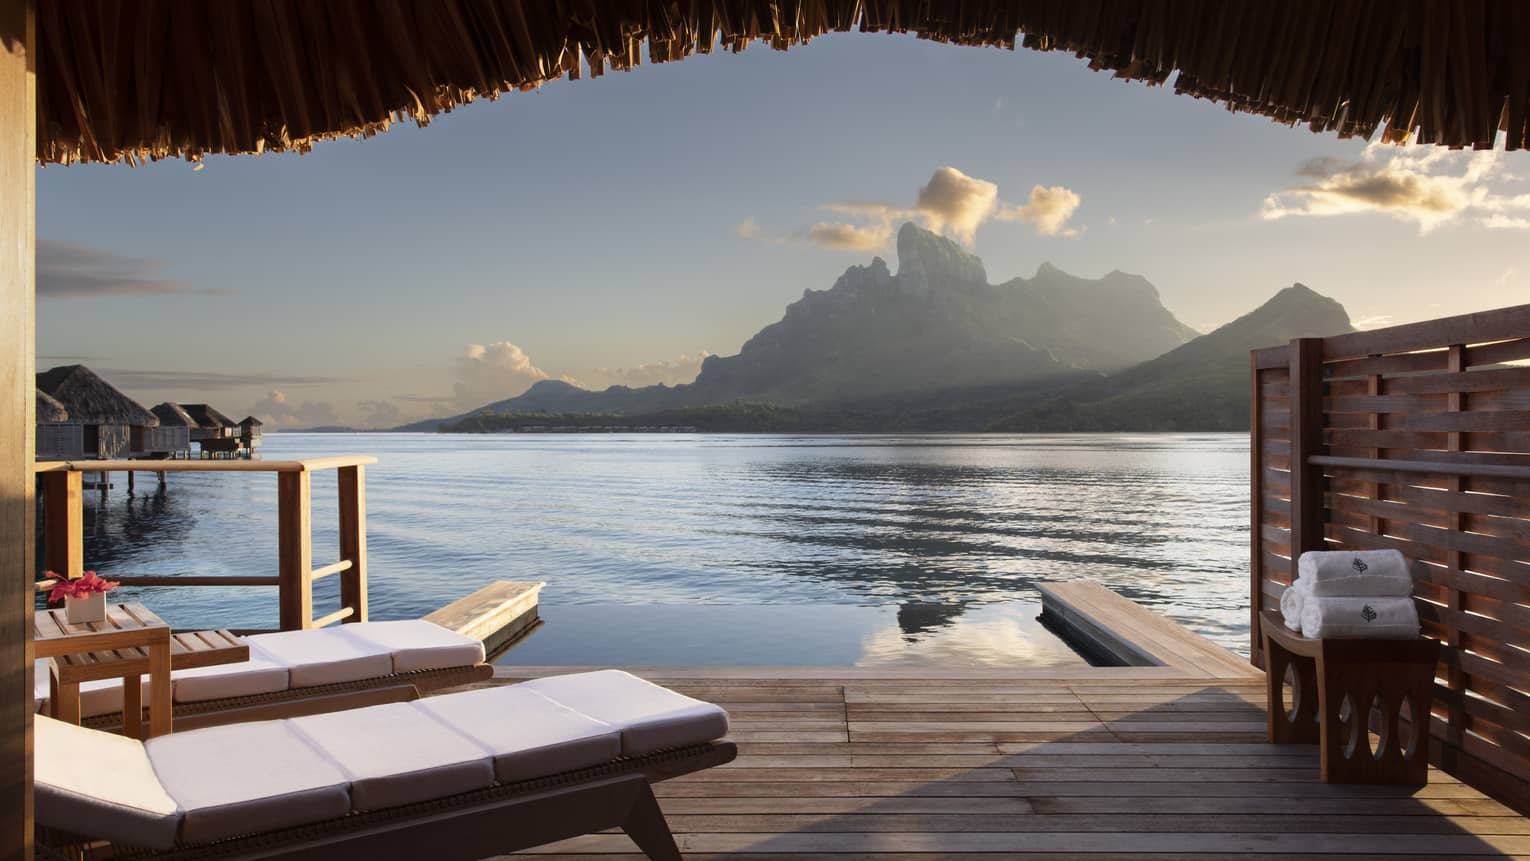 A view from a wooden Water Bungalow with white cushioned lounge chairs overlooking the ocean and mountains in the background at Four Seasons Bora Bora